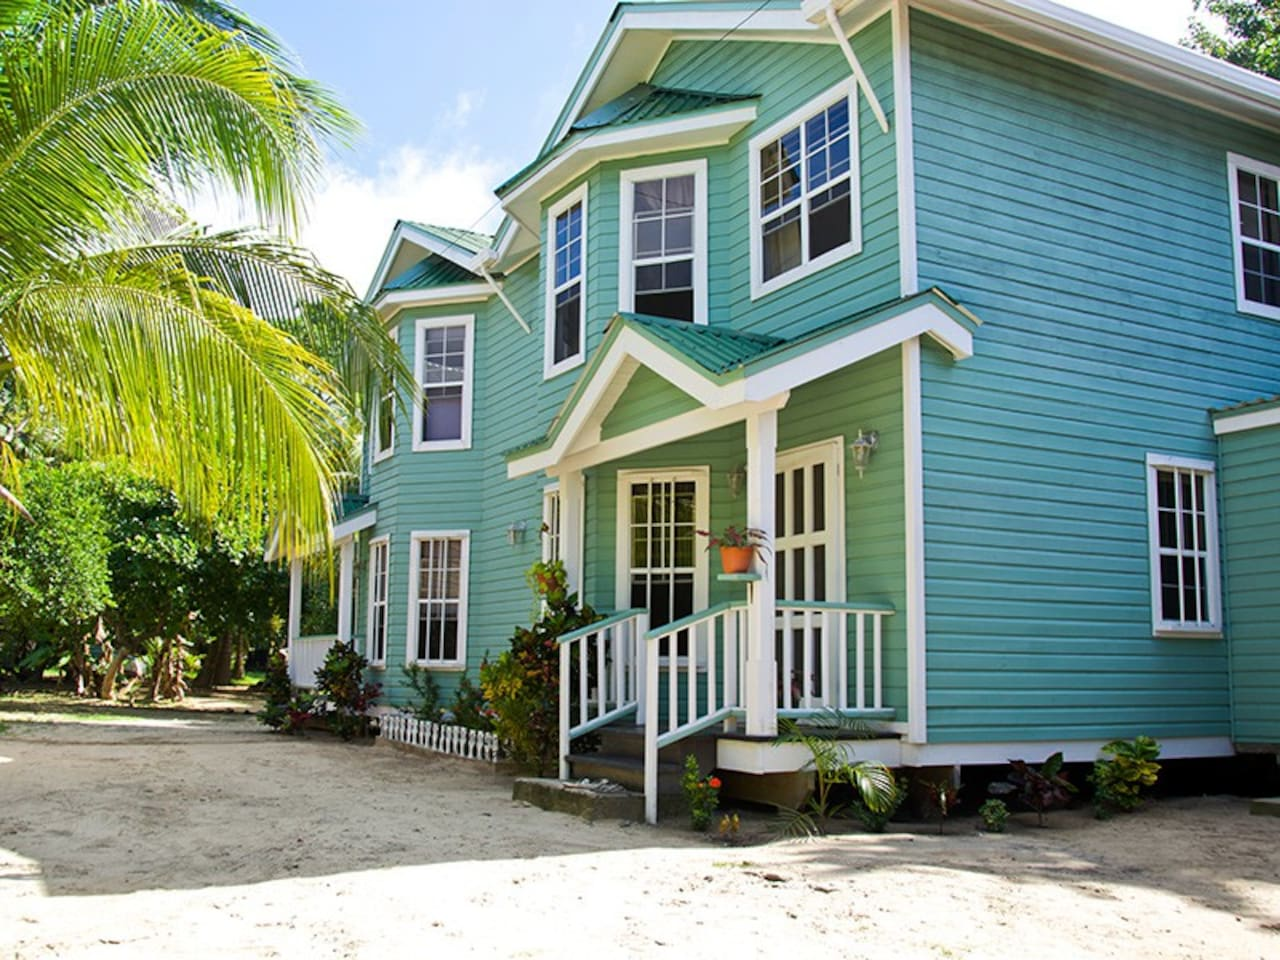 Bonito Beach House, steps from the beach. Entry and living areas on the ground floor, bedrooms upstairs.